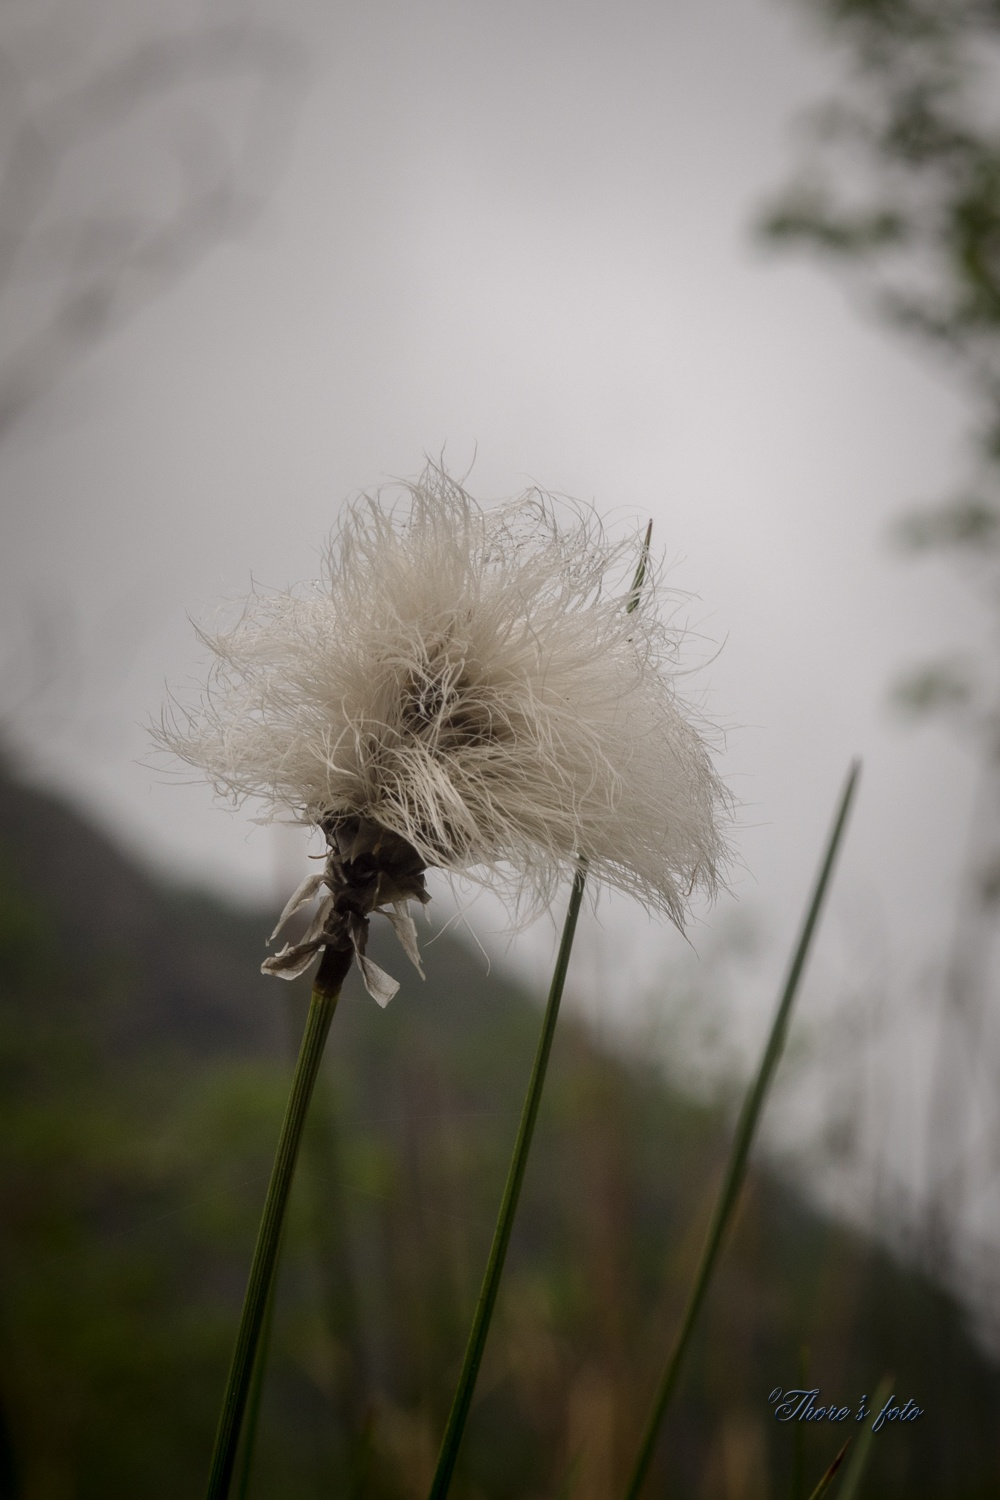 Cottongrass by Thore's photo